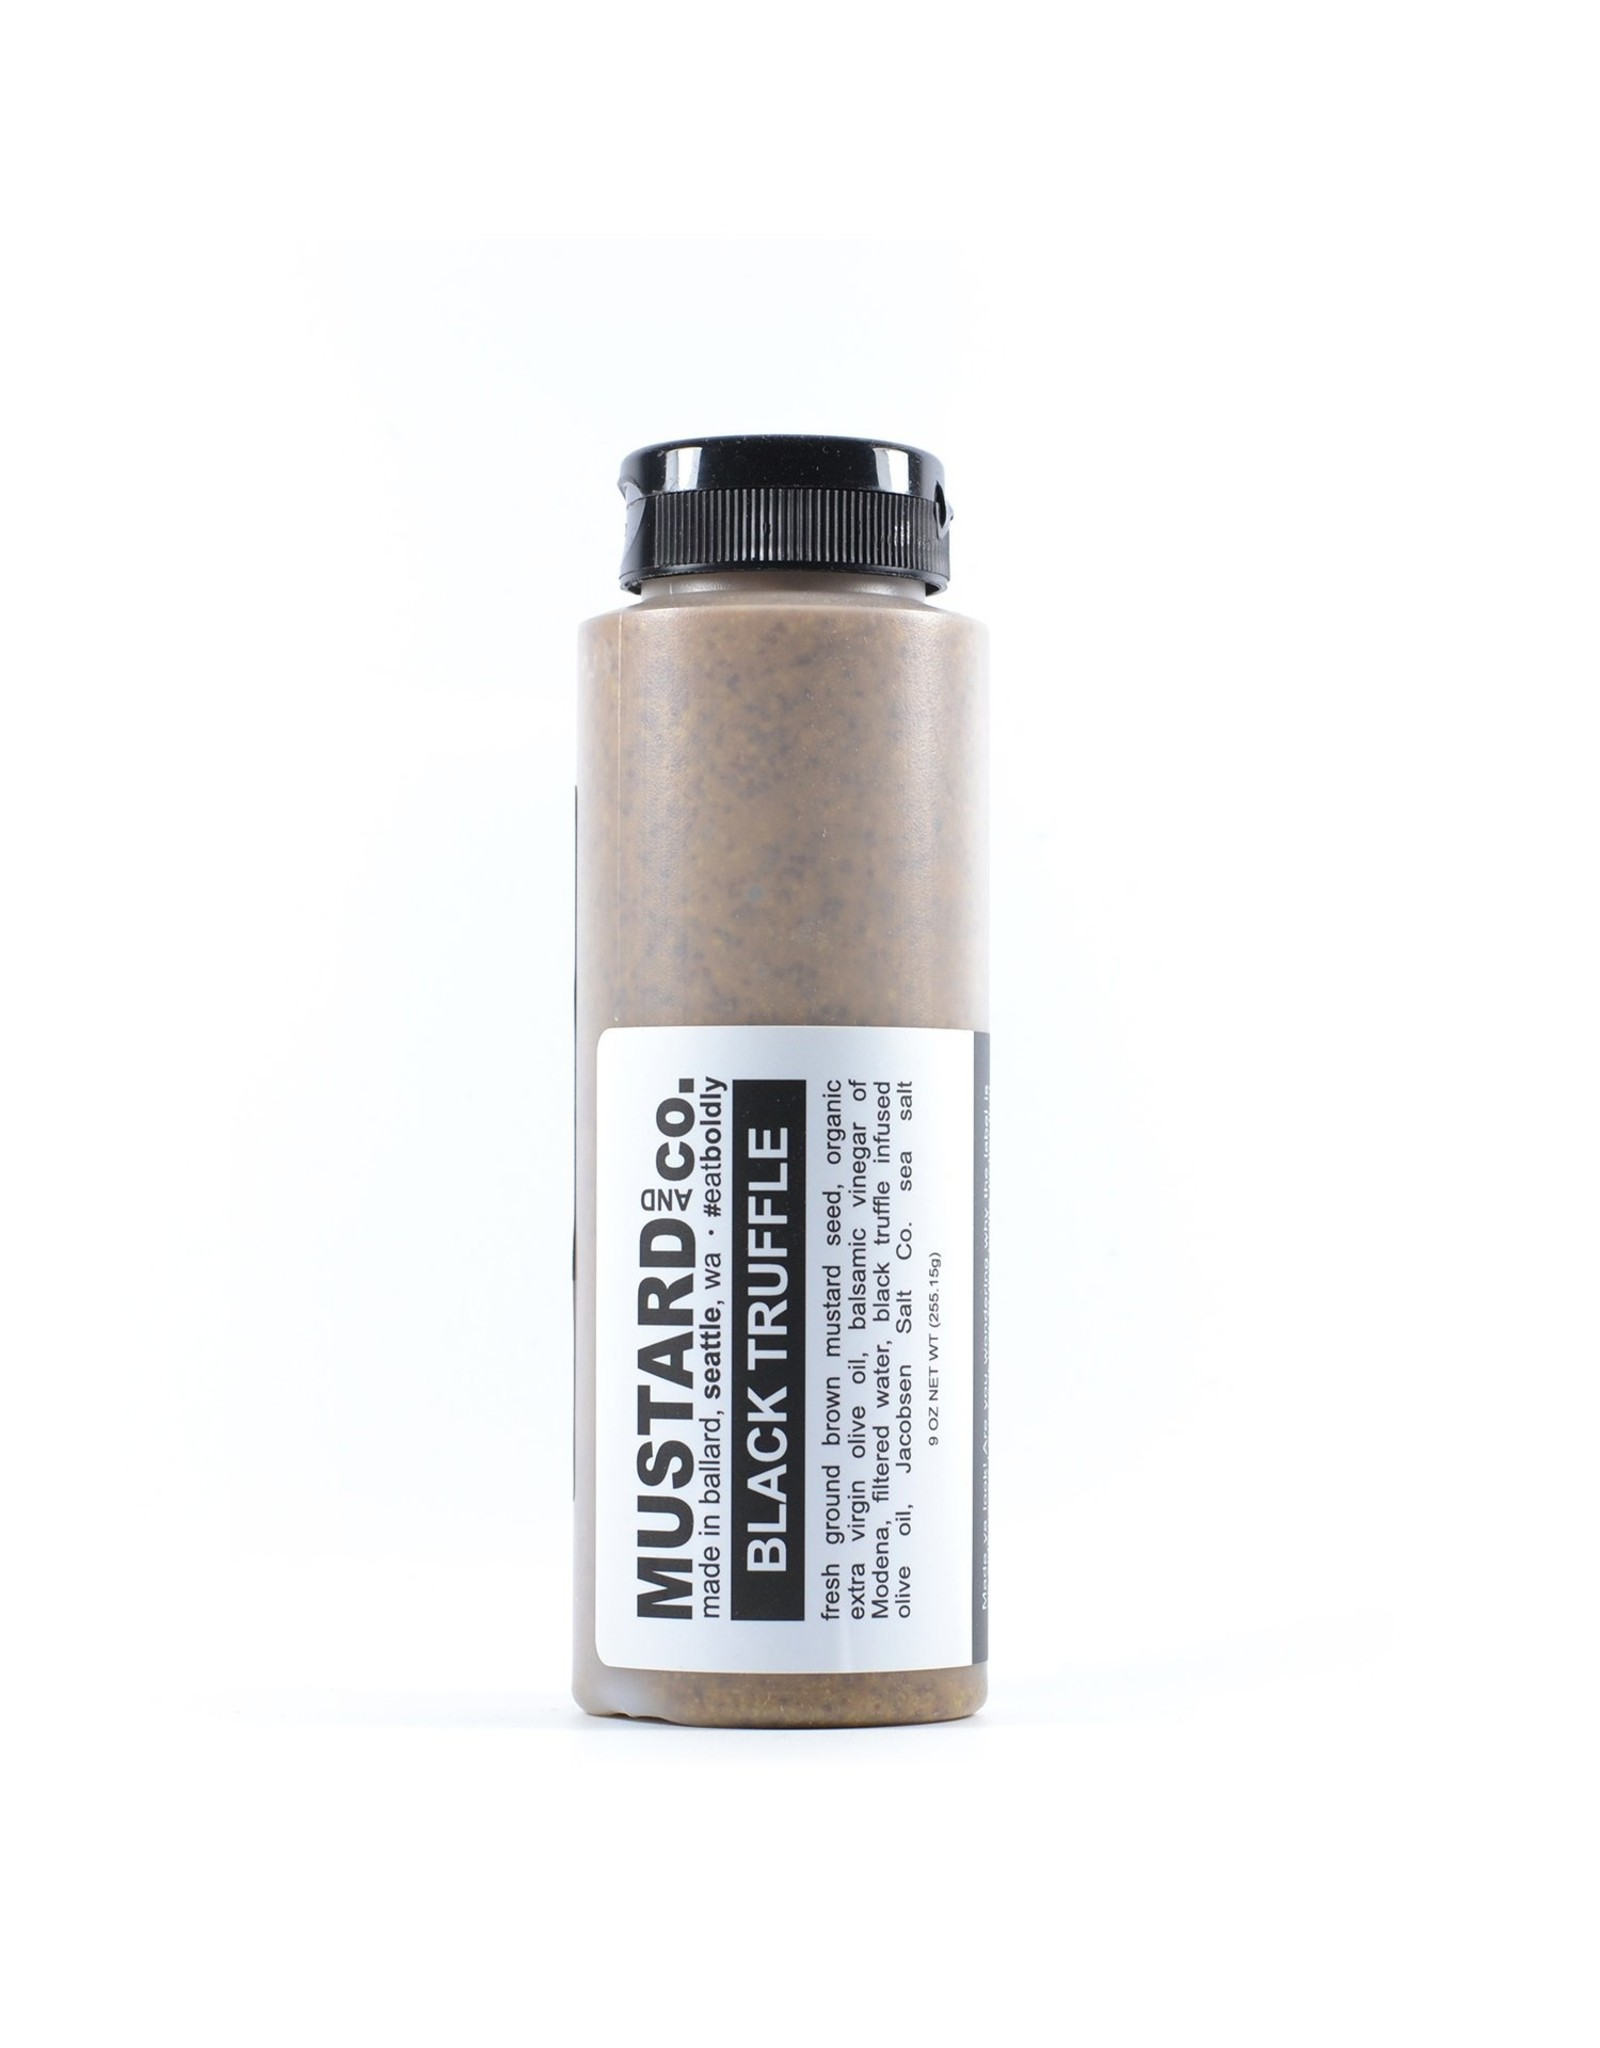 Mustard And co. Mustard And co. 9oz Squeeze (Truffle)